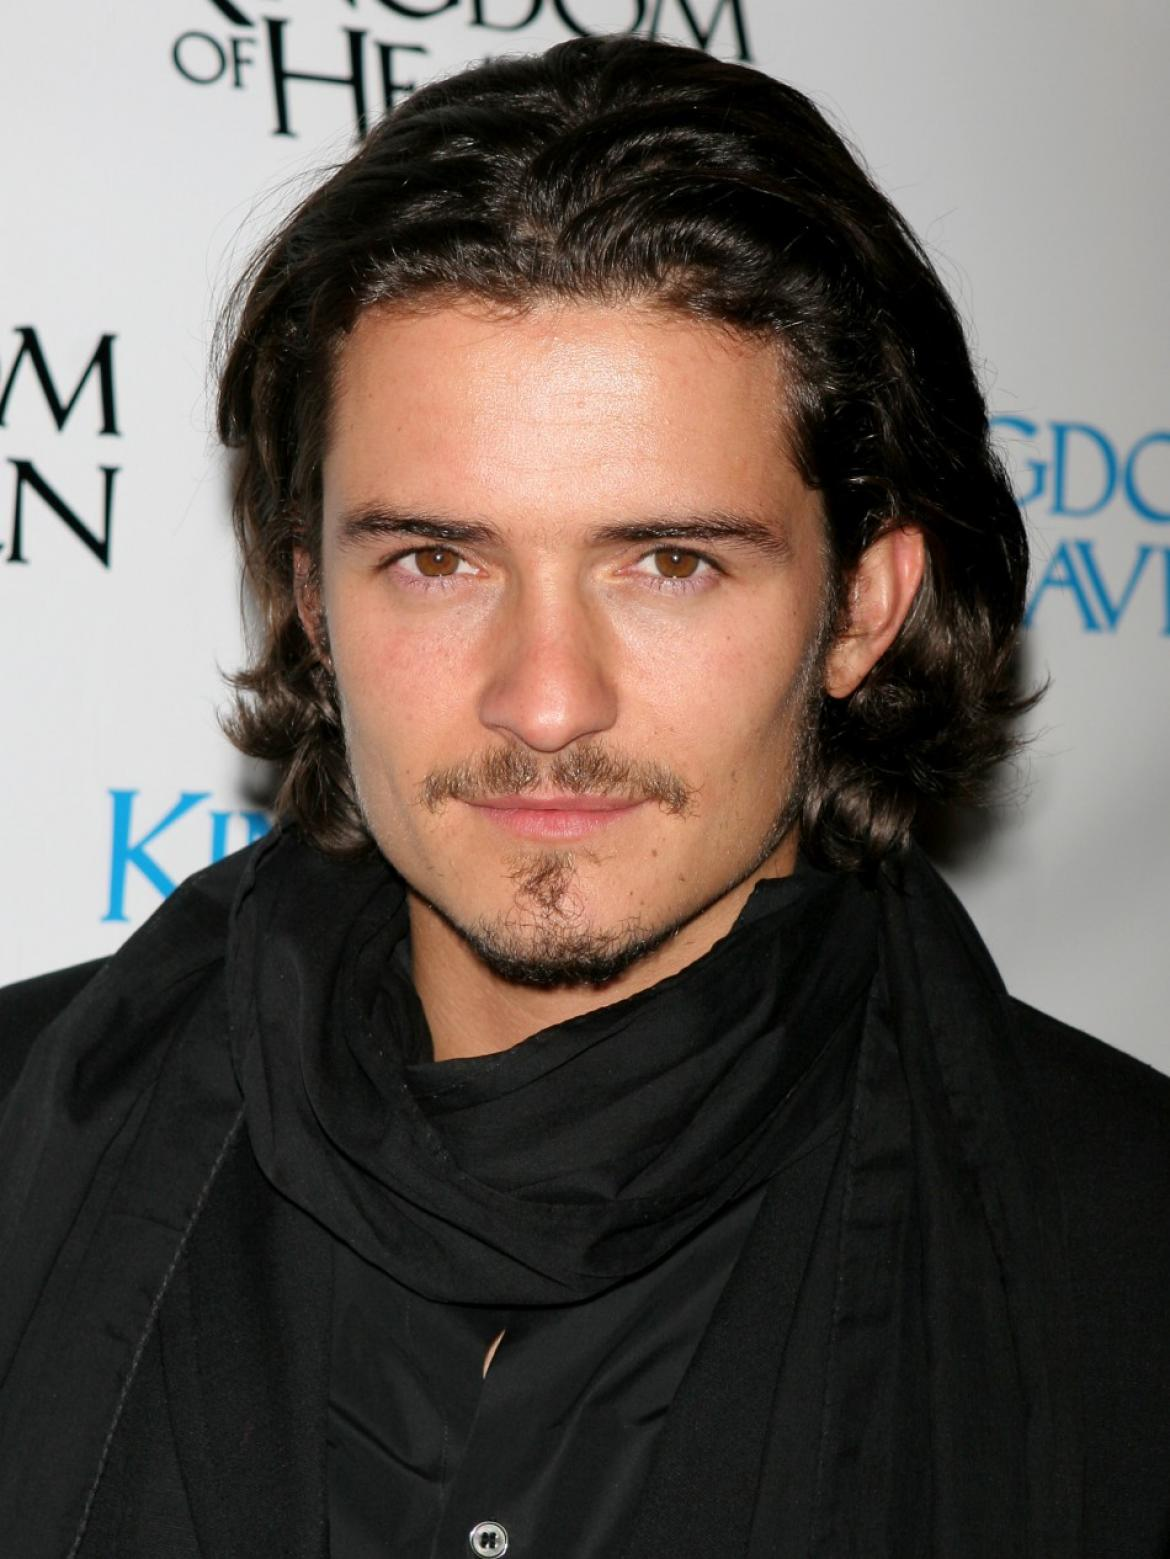 Orlando Bloom Nude u0026amp; In Full Bloom On Vacation w/ Katy Perry